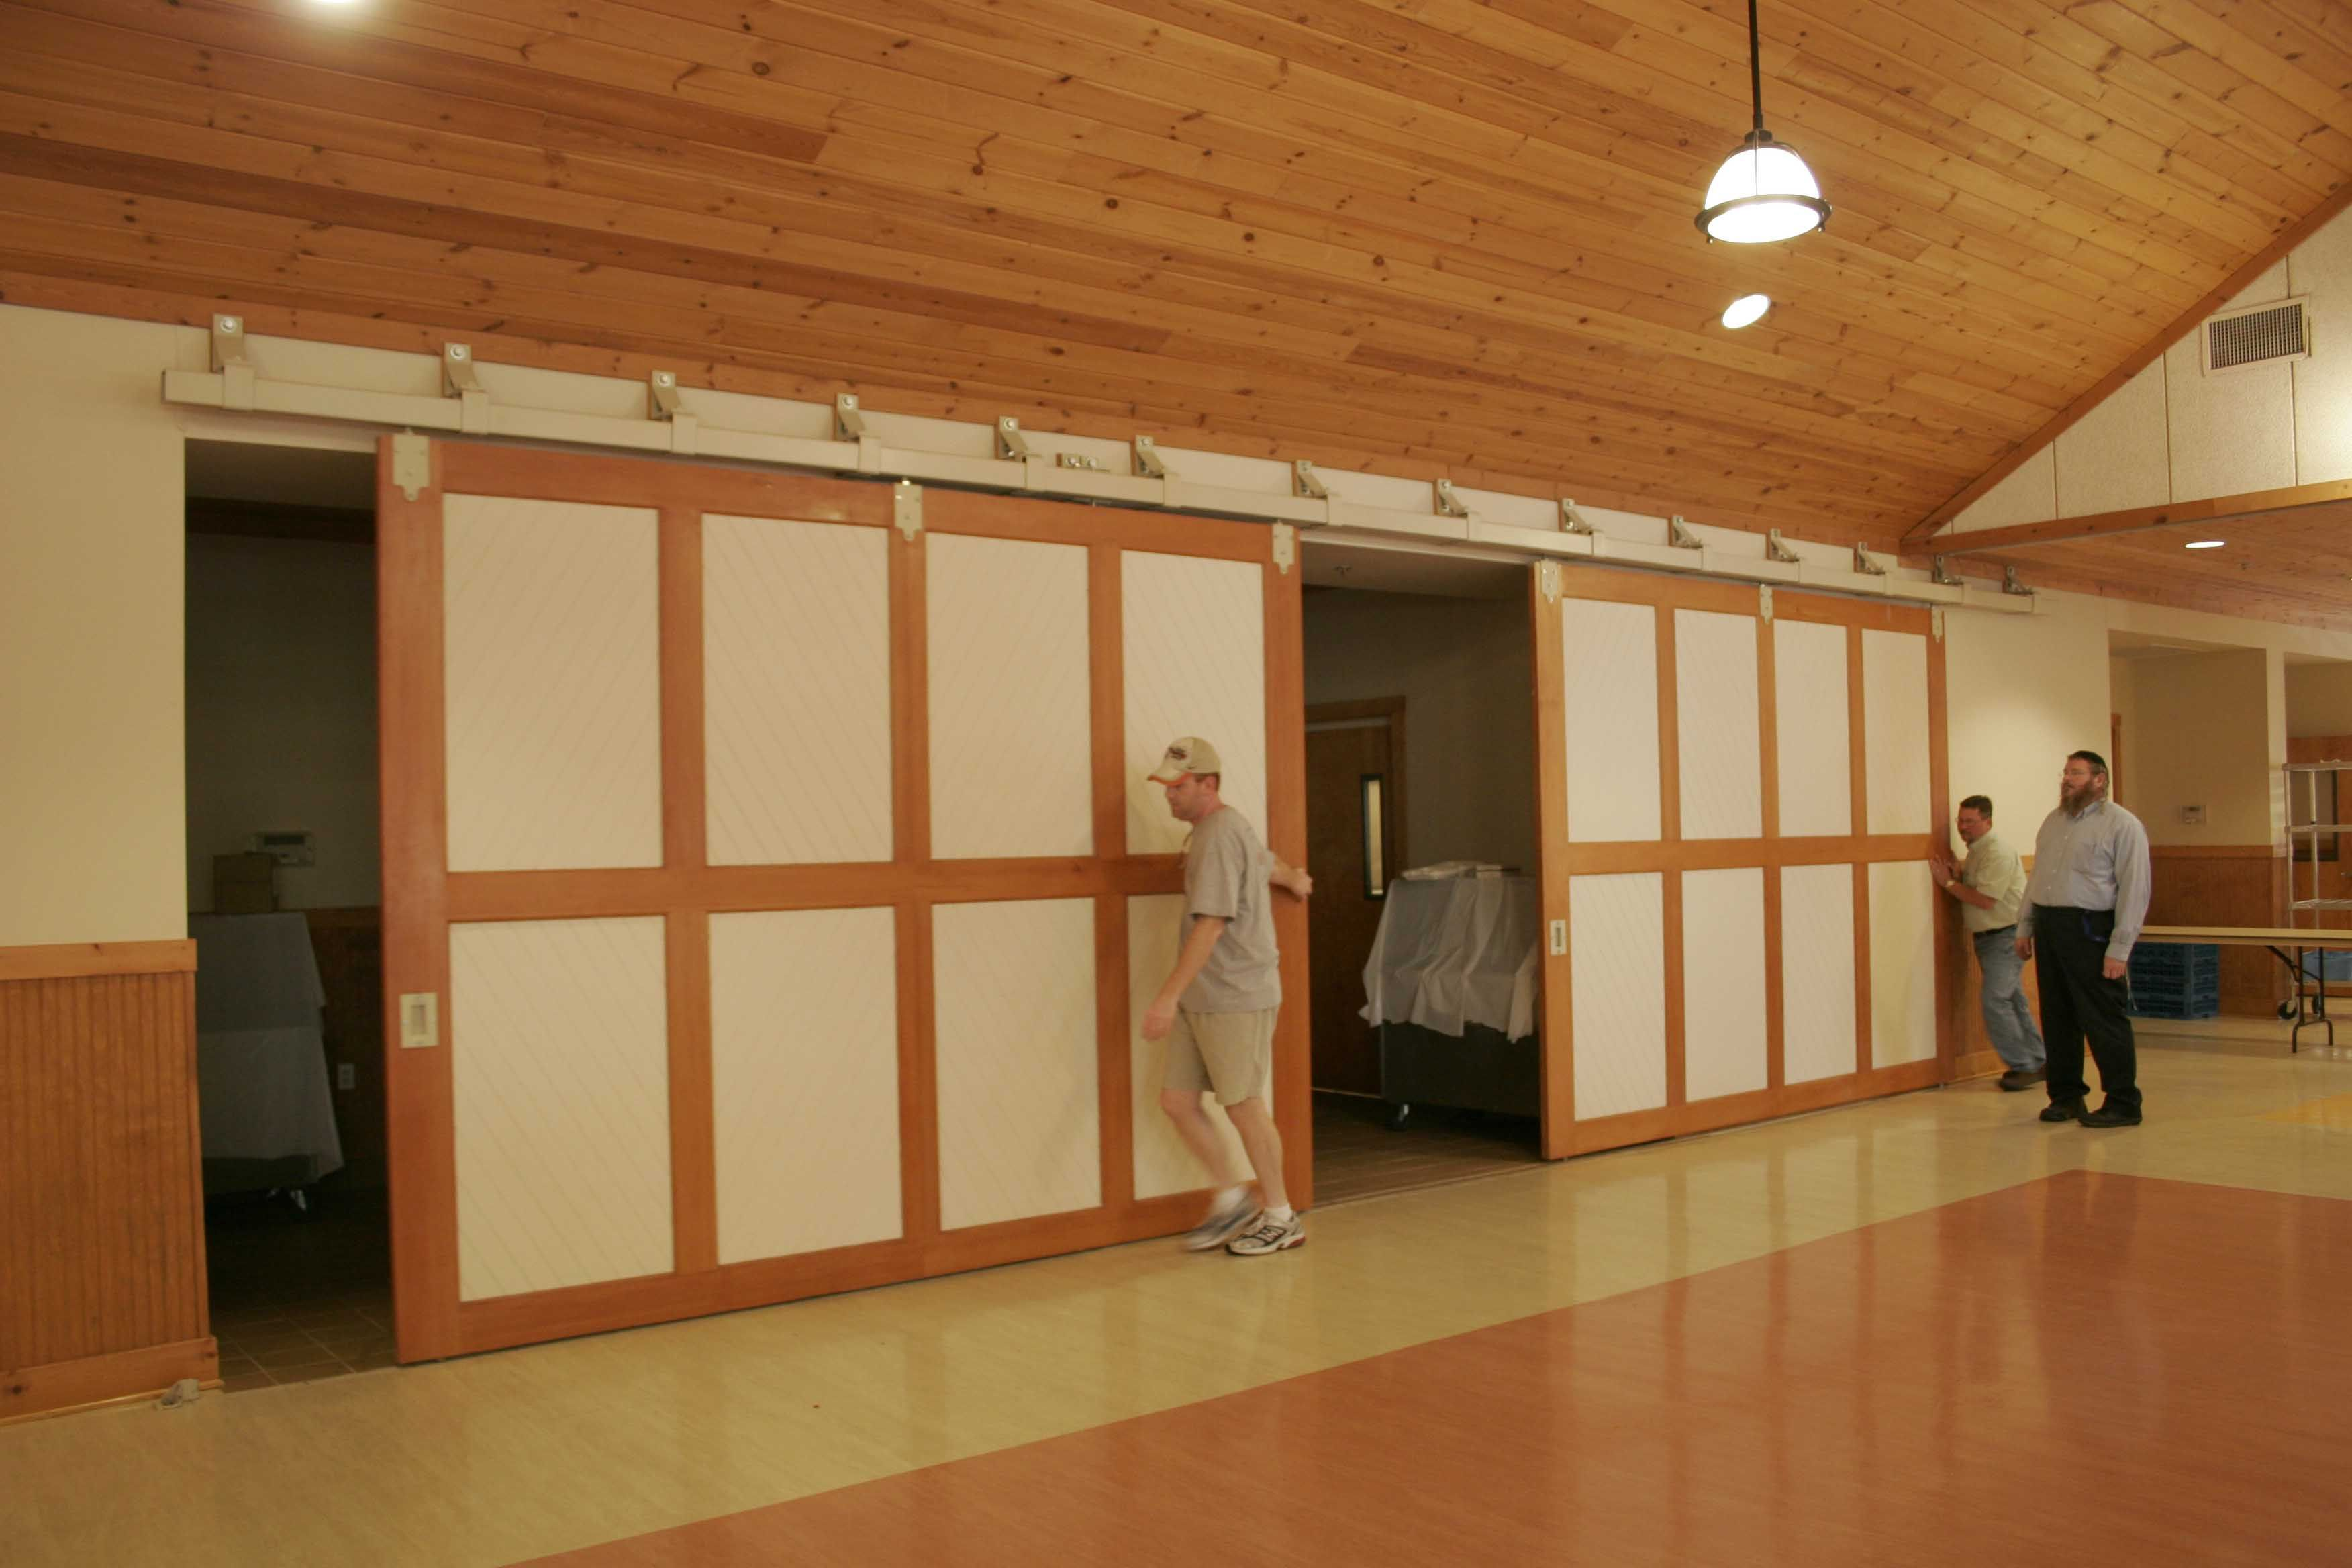 Hide The Mess School Cafeteria With Sliding Doors On Richards Wilcox Box Track Interior Exterior Doors Sliding Doors Exterior Barn Doors Sliding